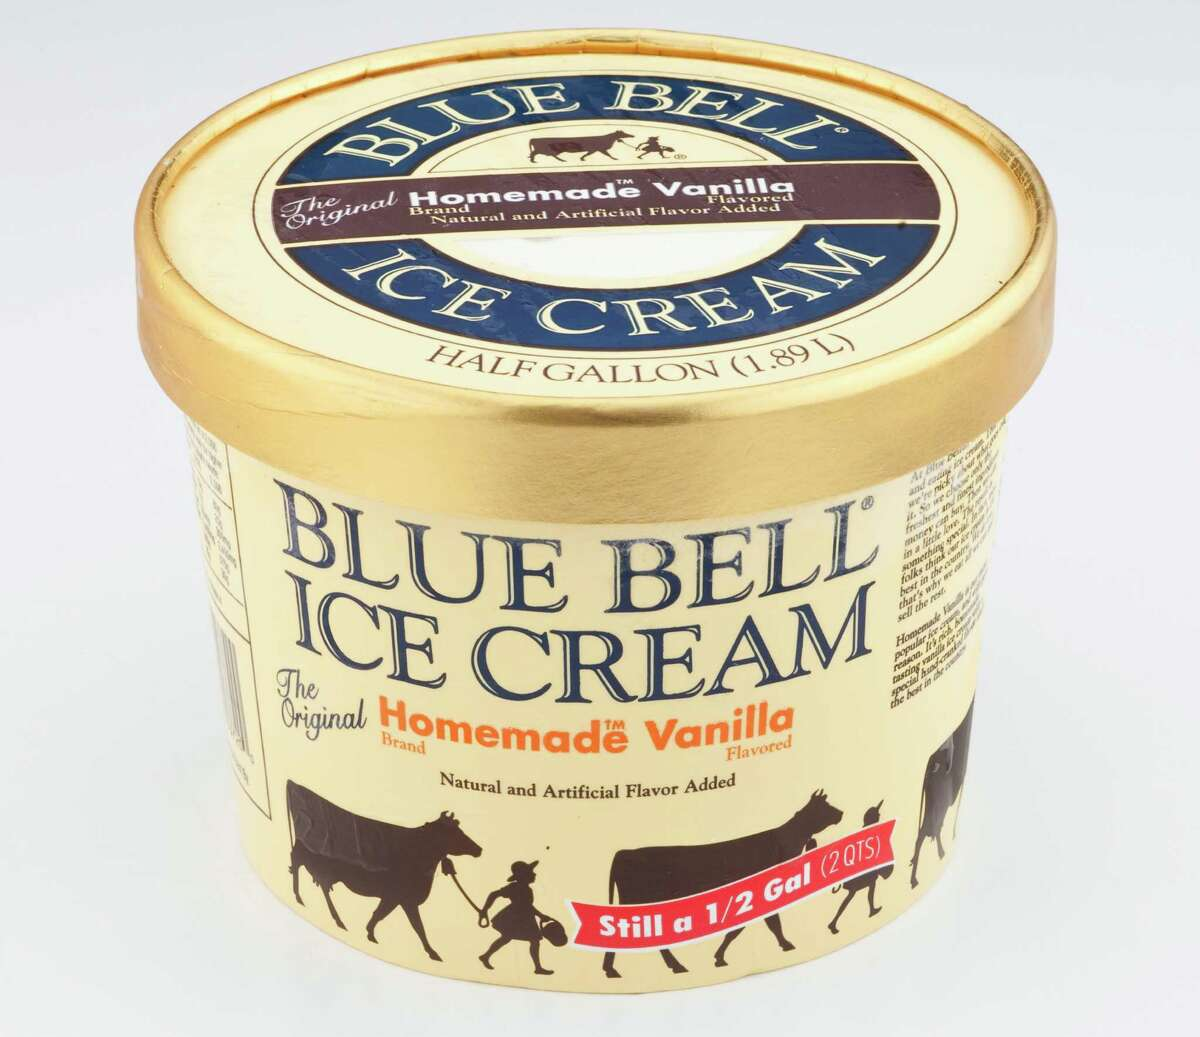 Blue Bell Ice Cream Home Made Vanilla. Photographed Tuesday, June 28, 2011, in the Chronicle studio in Houston.